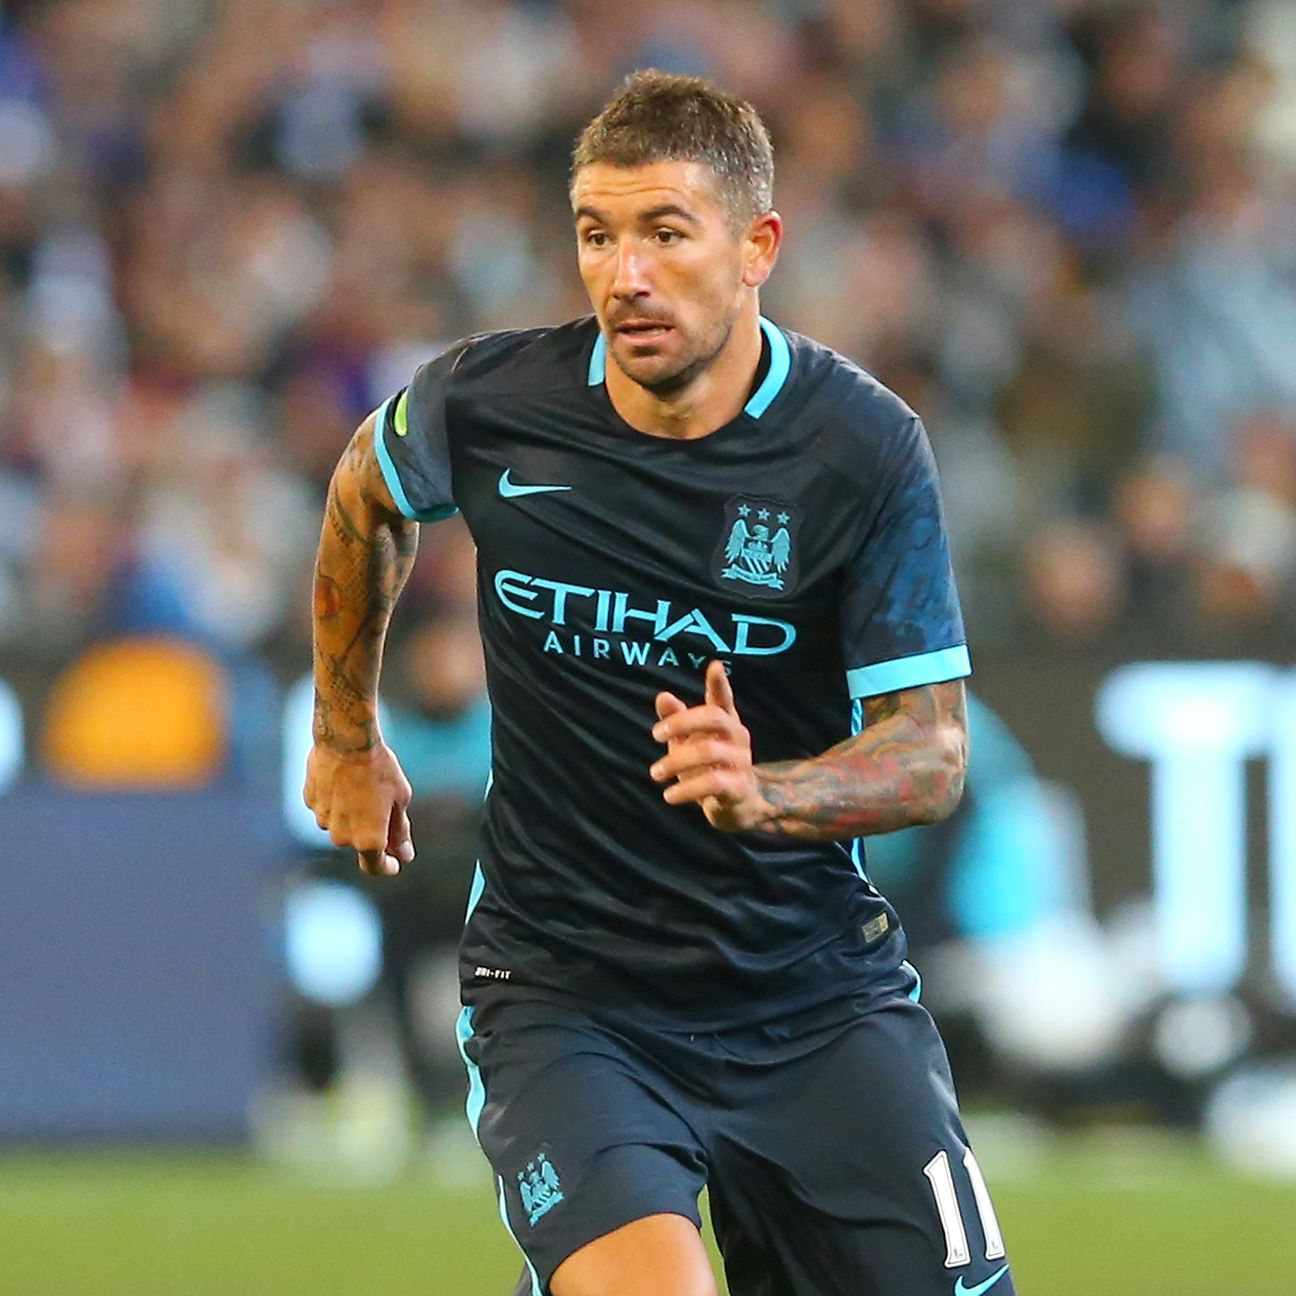 Aleksandar Kolarov and the Manchester City full-backs continue to struggle.